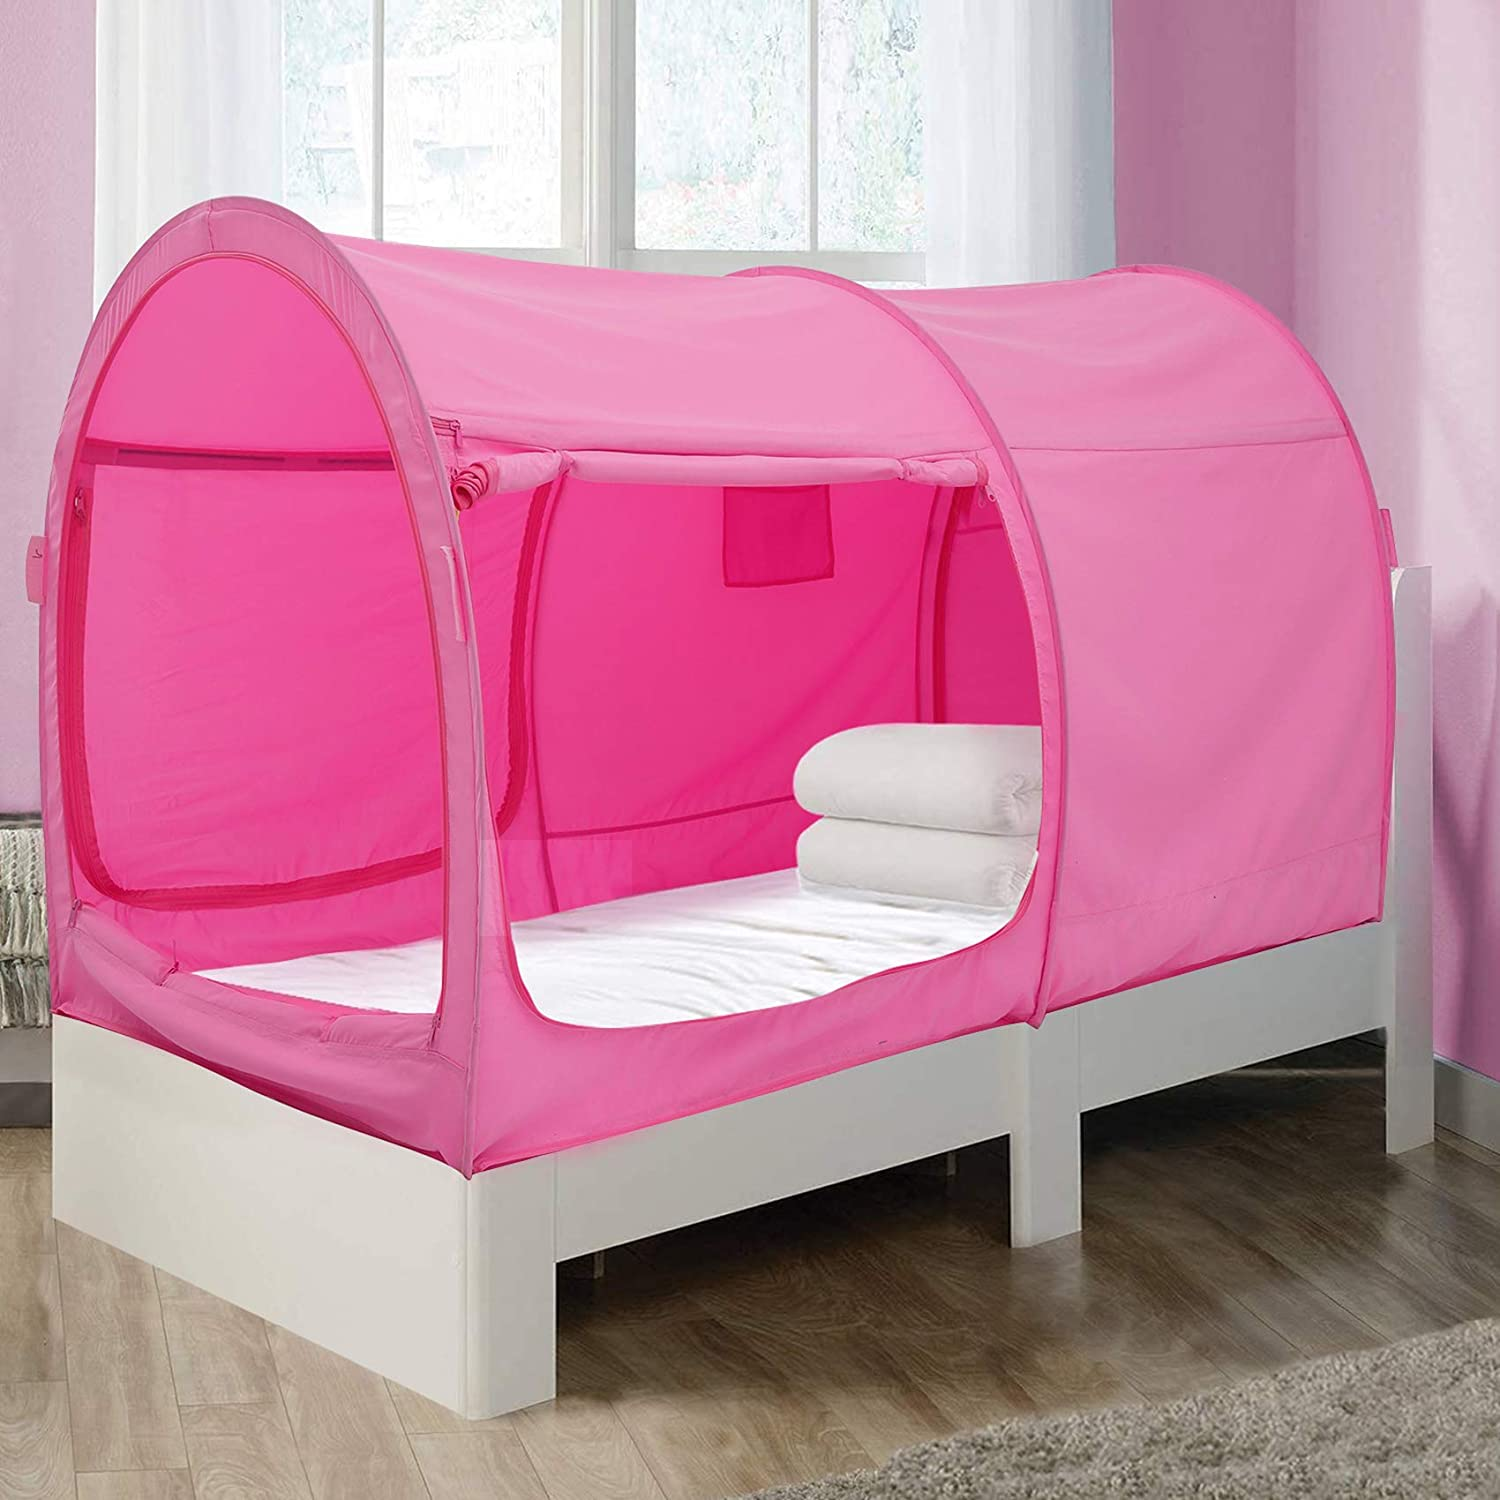 Alvantor Bed Canopy Bed Tents Dream Tents Privacy Space Single Size Sleeping Tents Indoor Pop Up Portable Frame Curtains Breathable Pink Cottage Mattress Not Included Reducing Light Amazon Co Uk Sports Outdoors